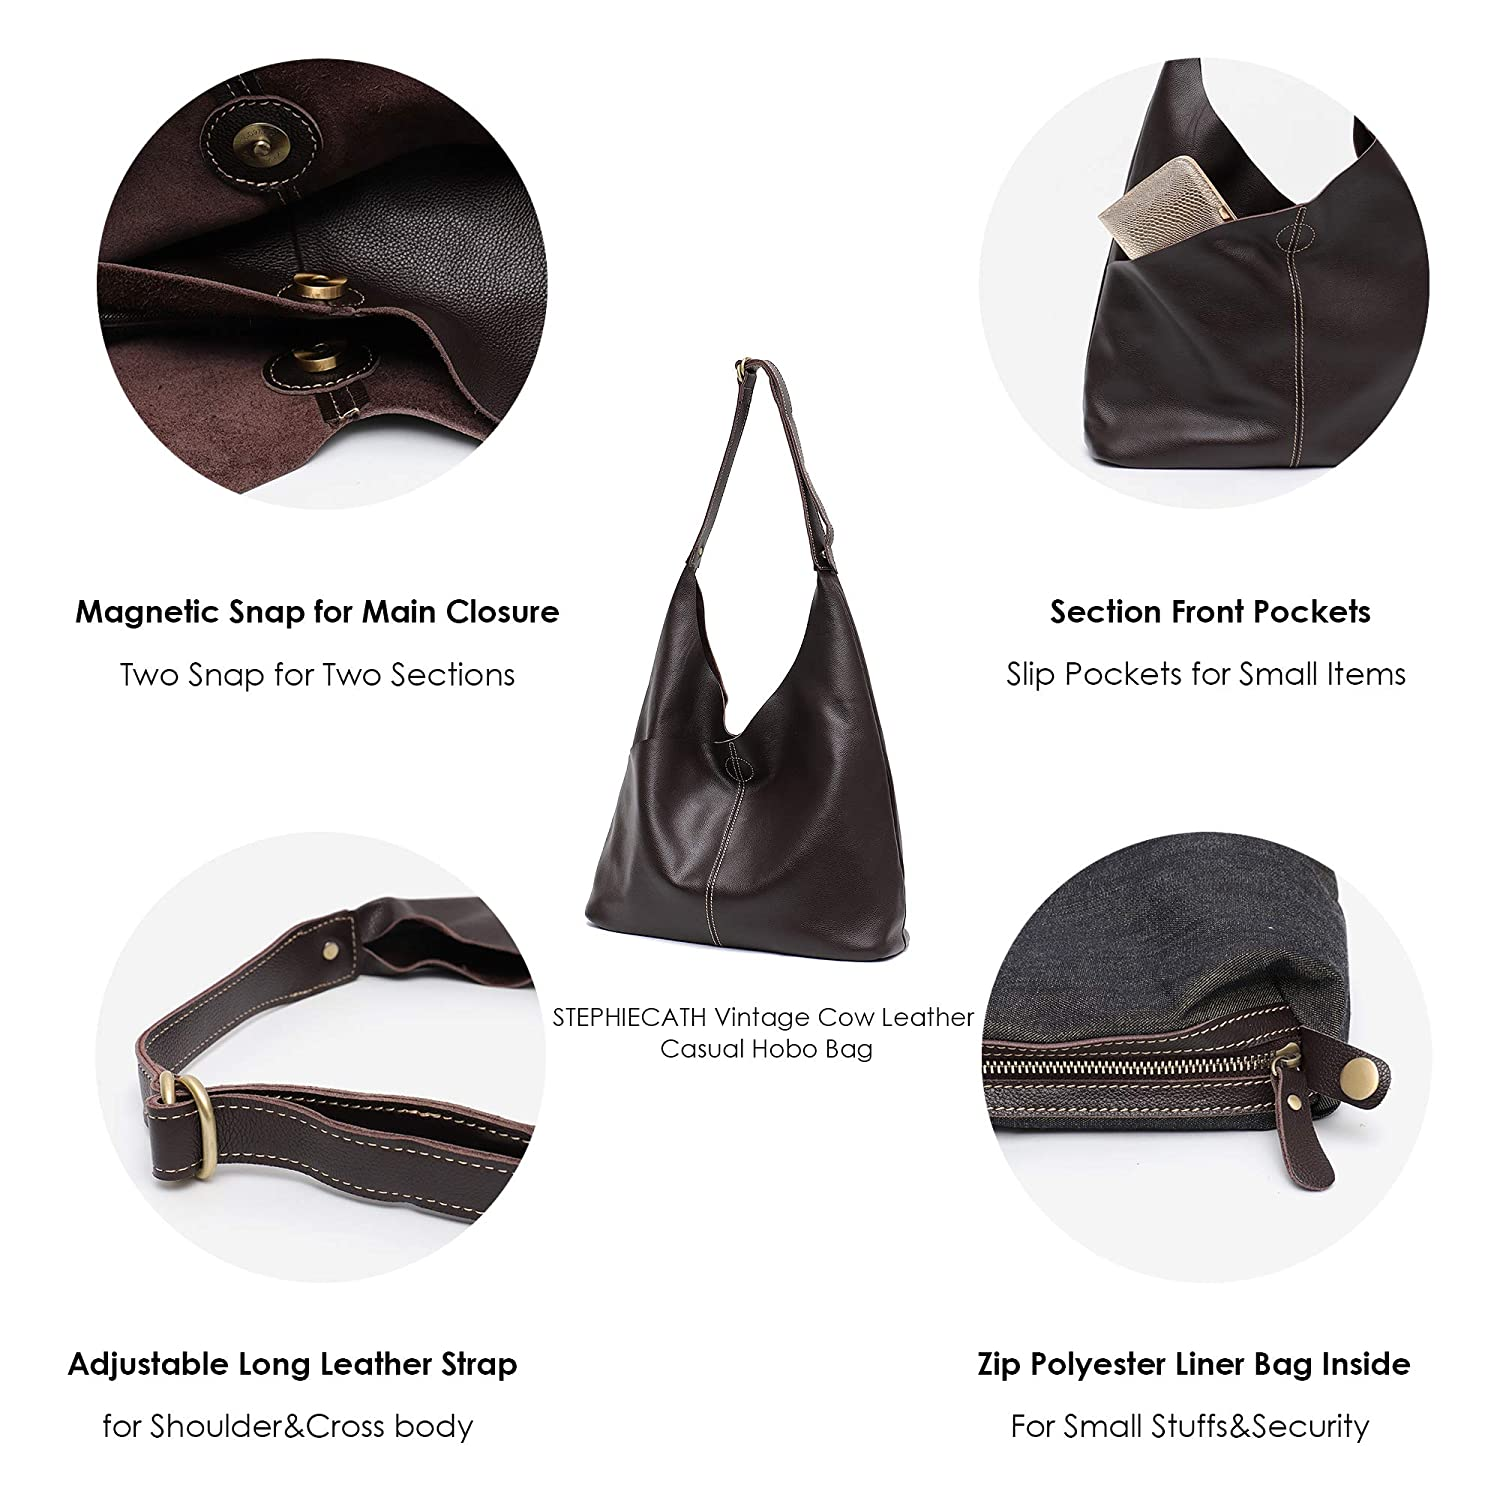 d5cca838a227 Amazon.com  Genuine Leather Women s Shoulder Bag STEPHIECATH Large Casual  Soft Real Leather Skin Tote Vintage Snap Basket Carry Bag (COFFEE)  Musical  ...